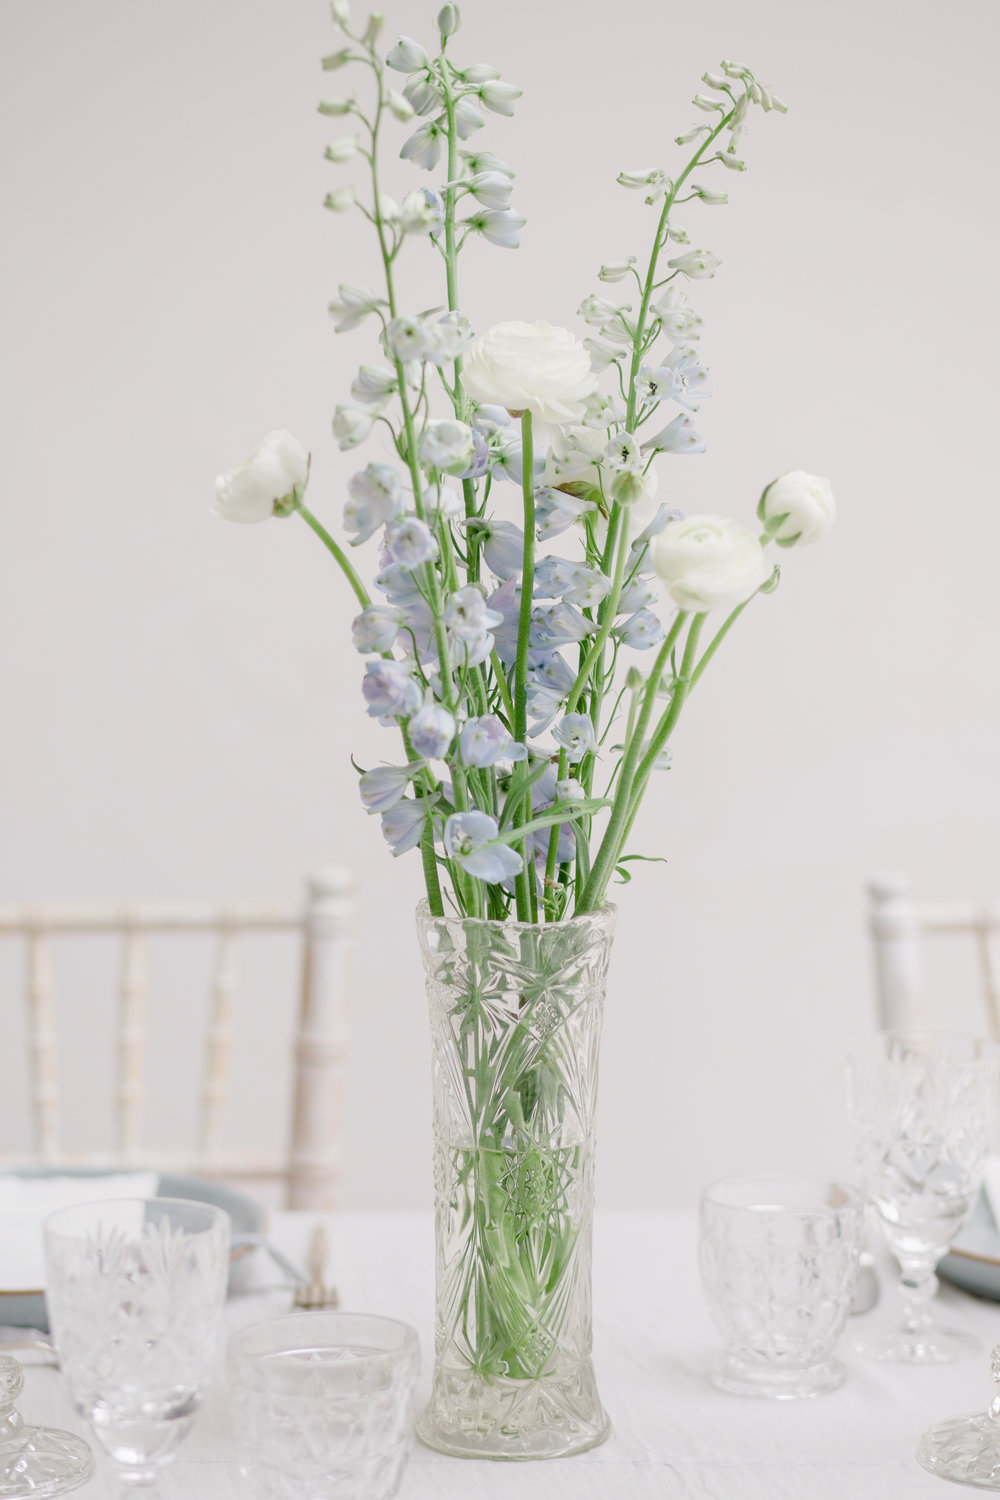 The Timeless Stylist - Cut Glass Wedding Vases